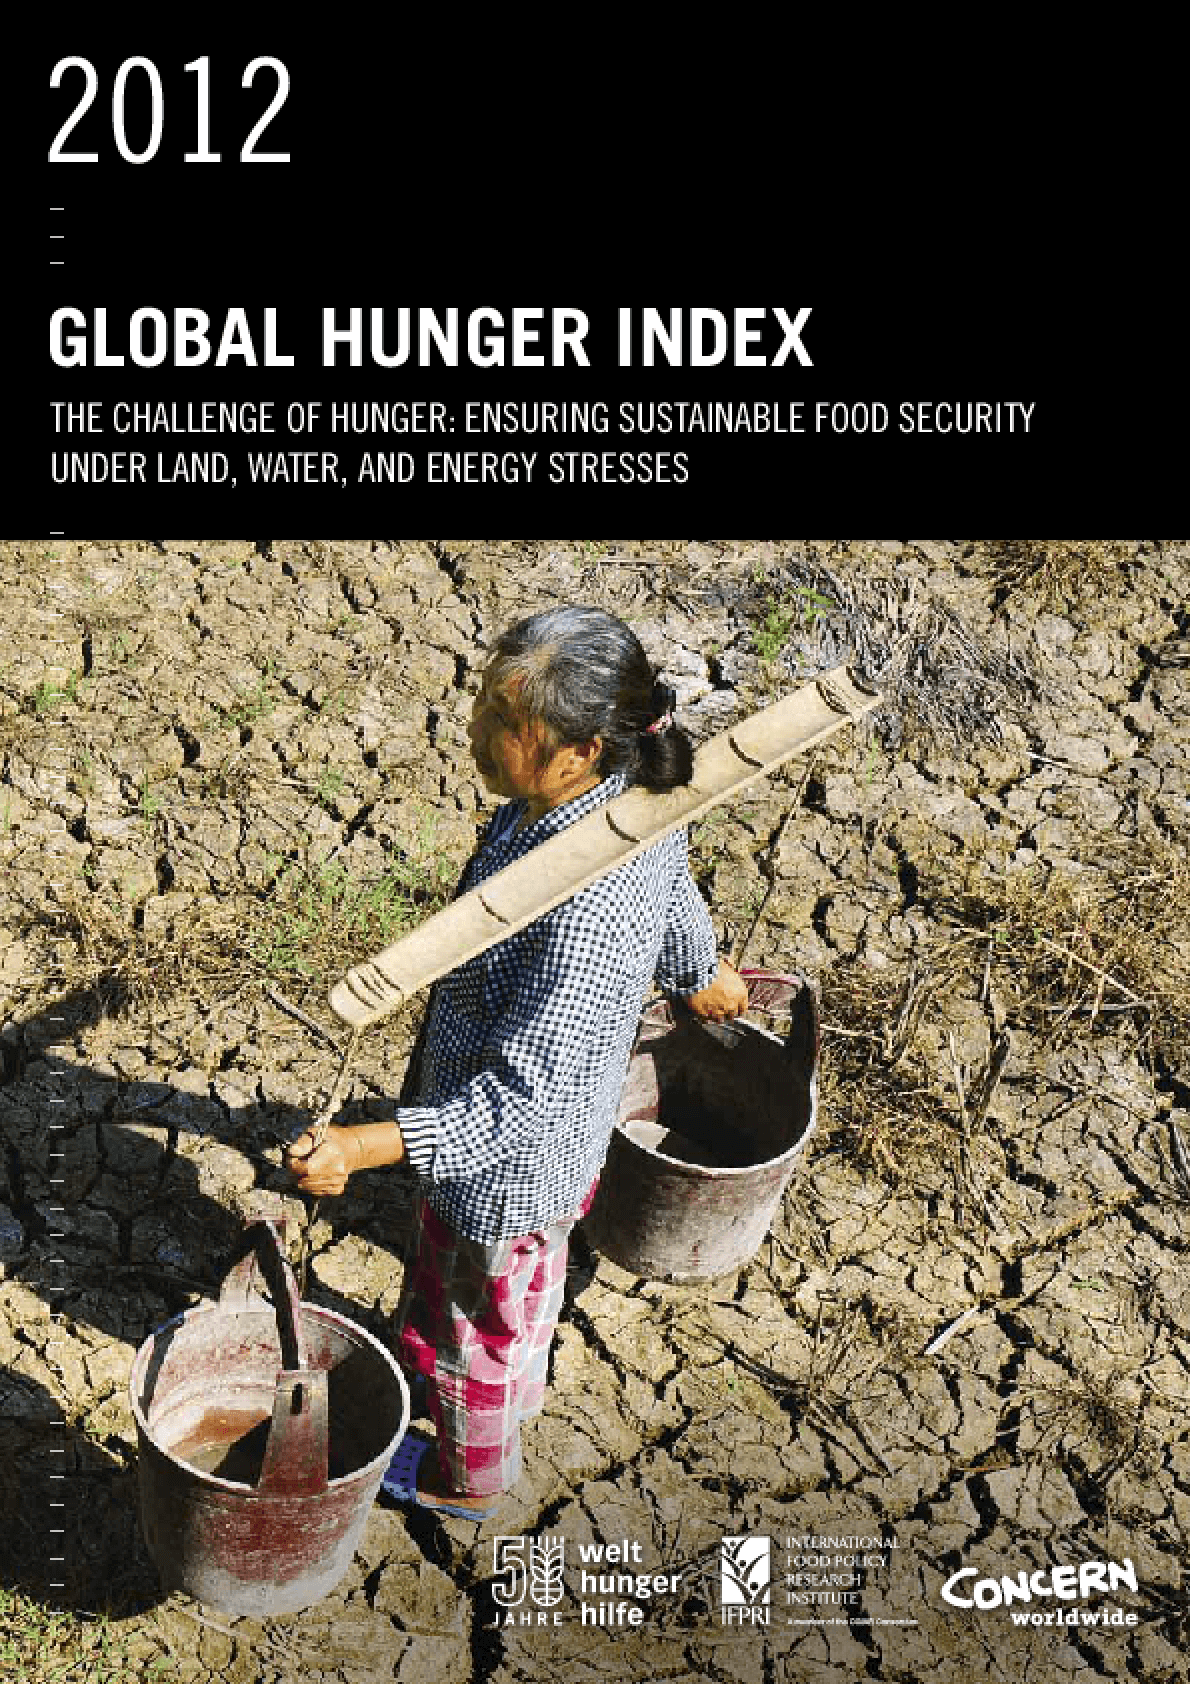 Global Hunger Index 2012